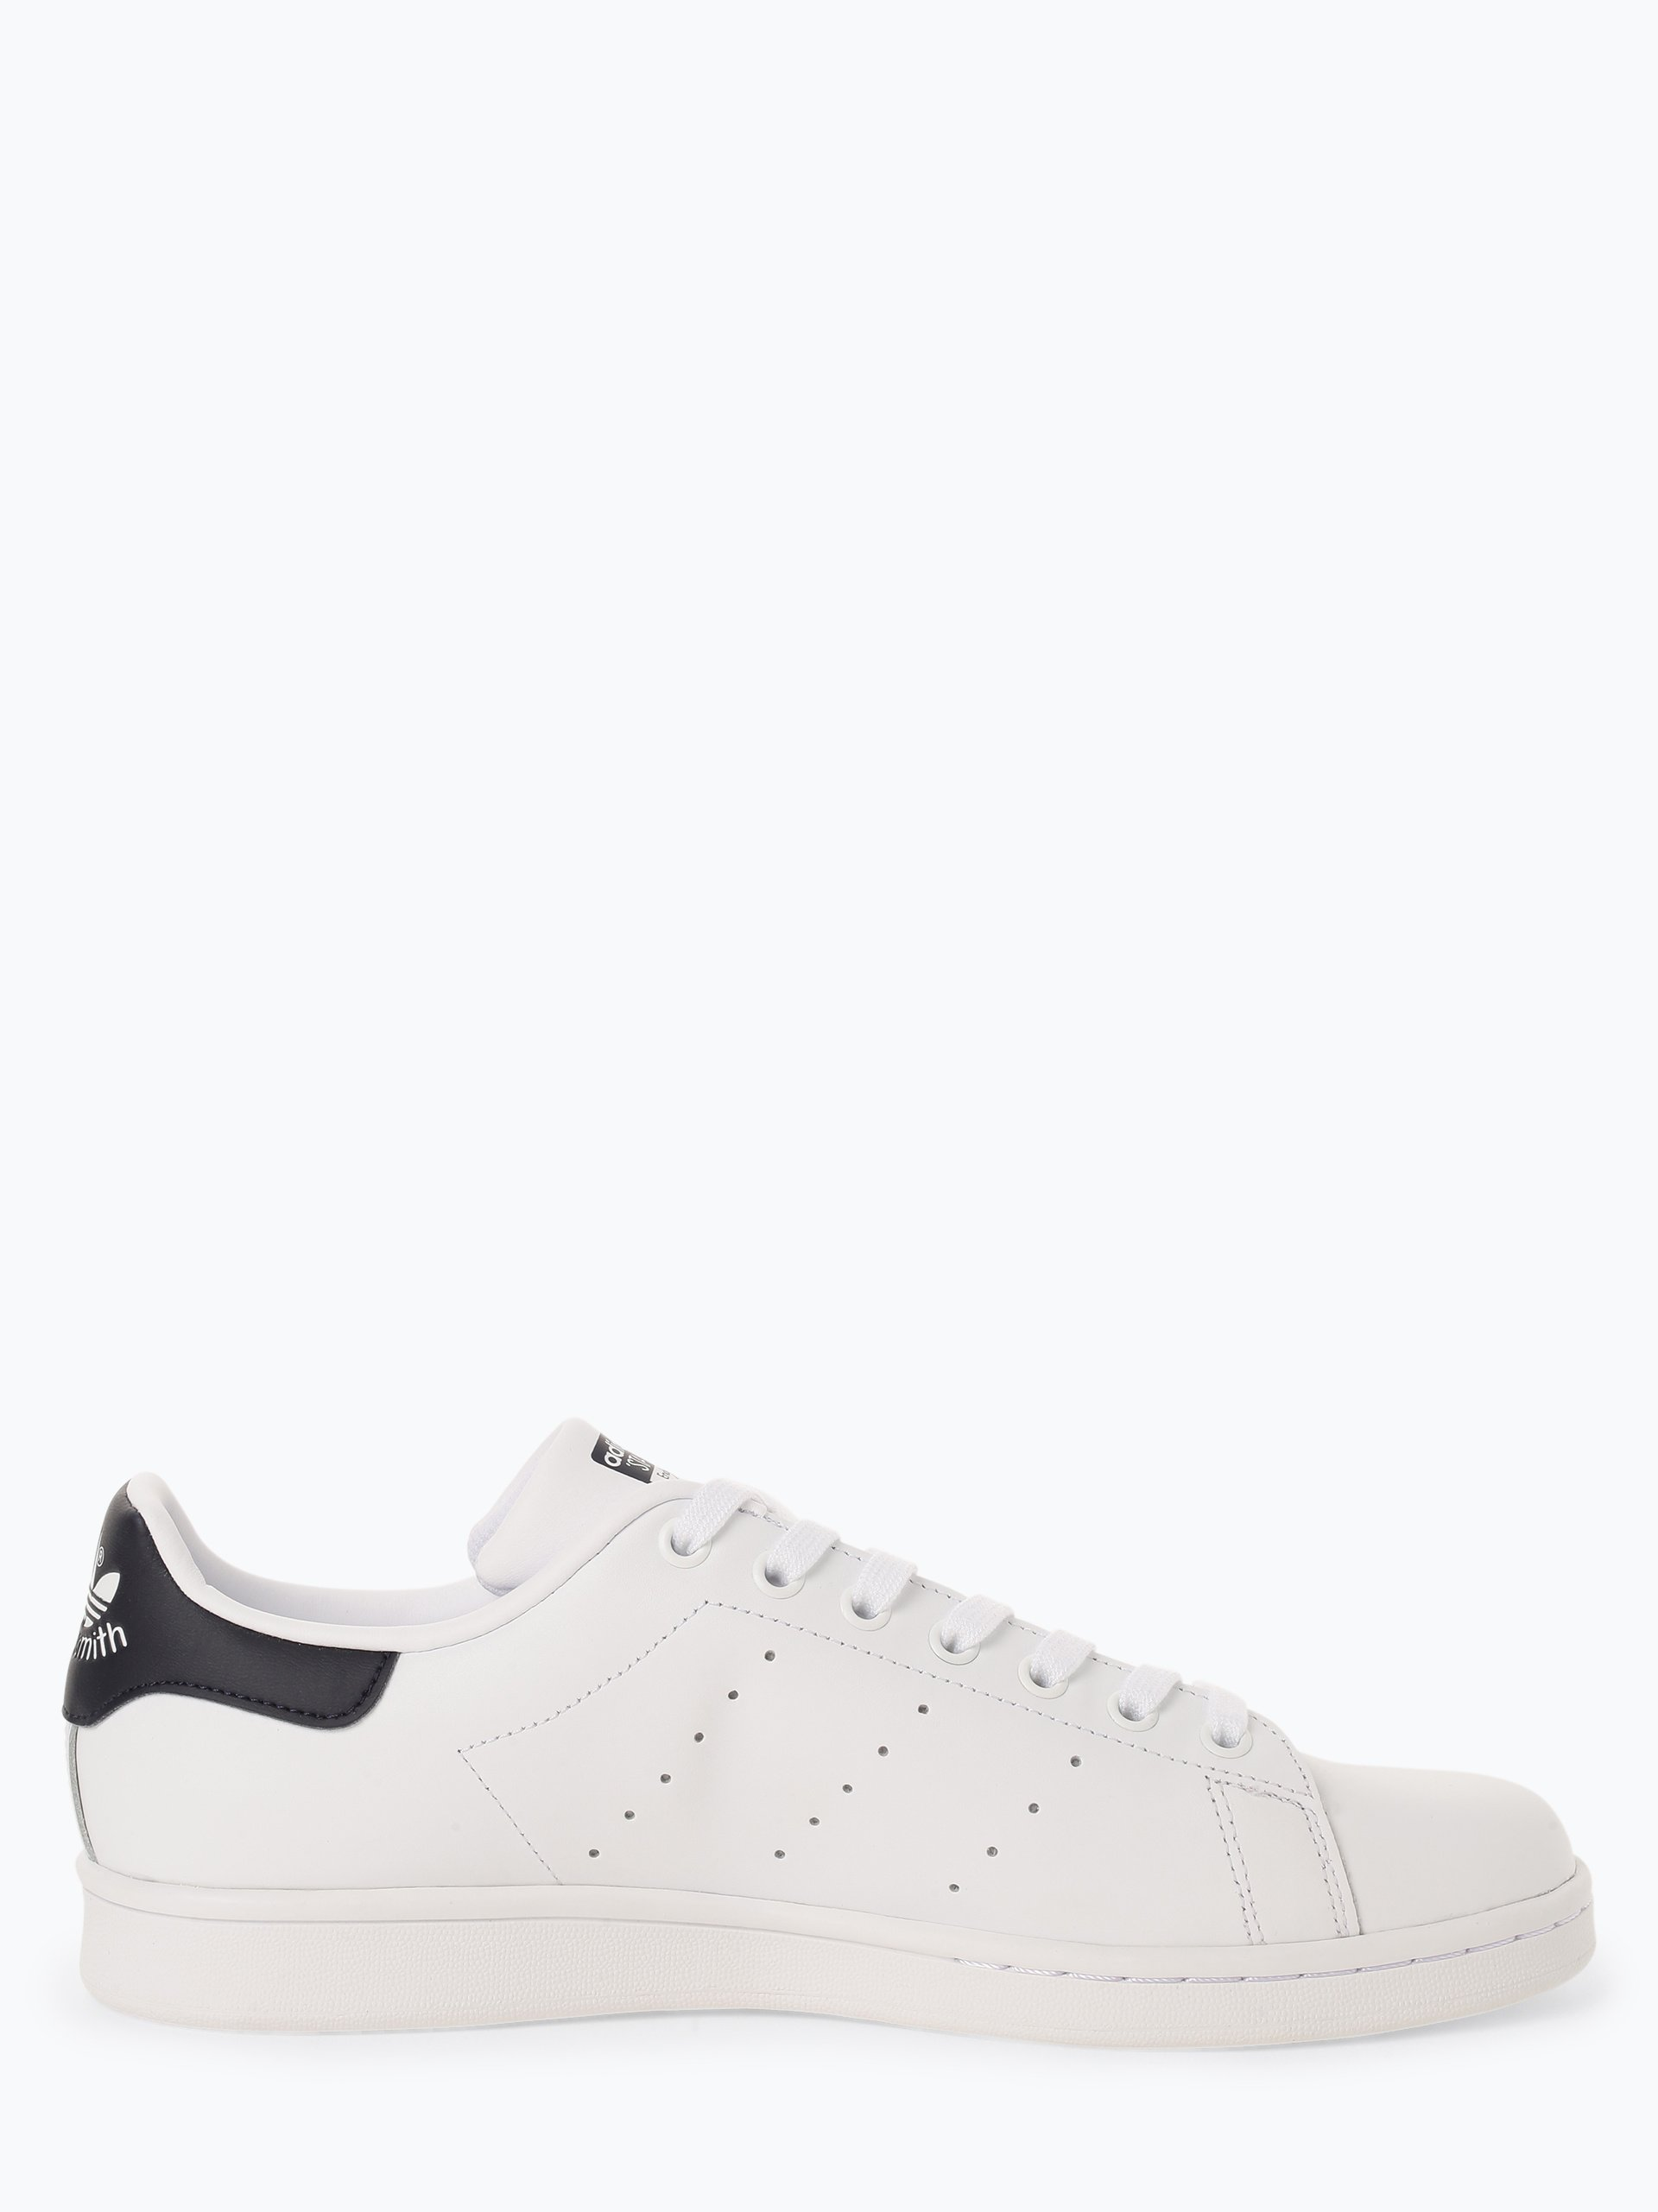 adidas Originals Herren Sneaker aus Leder - Stan Smith